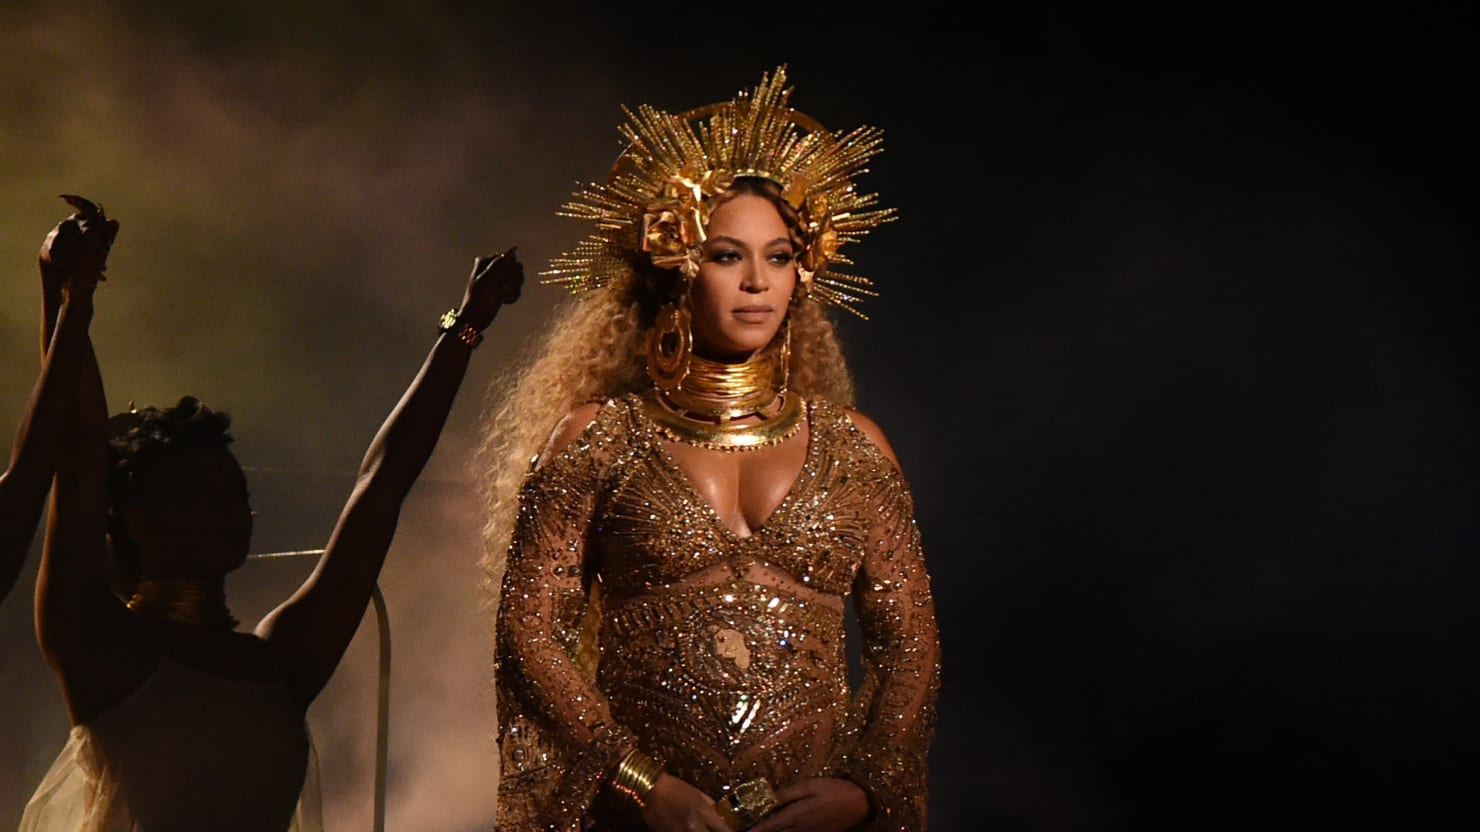 This Is Why So Many People Seem to Believe Beyoncé Is a Witch